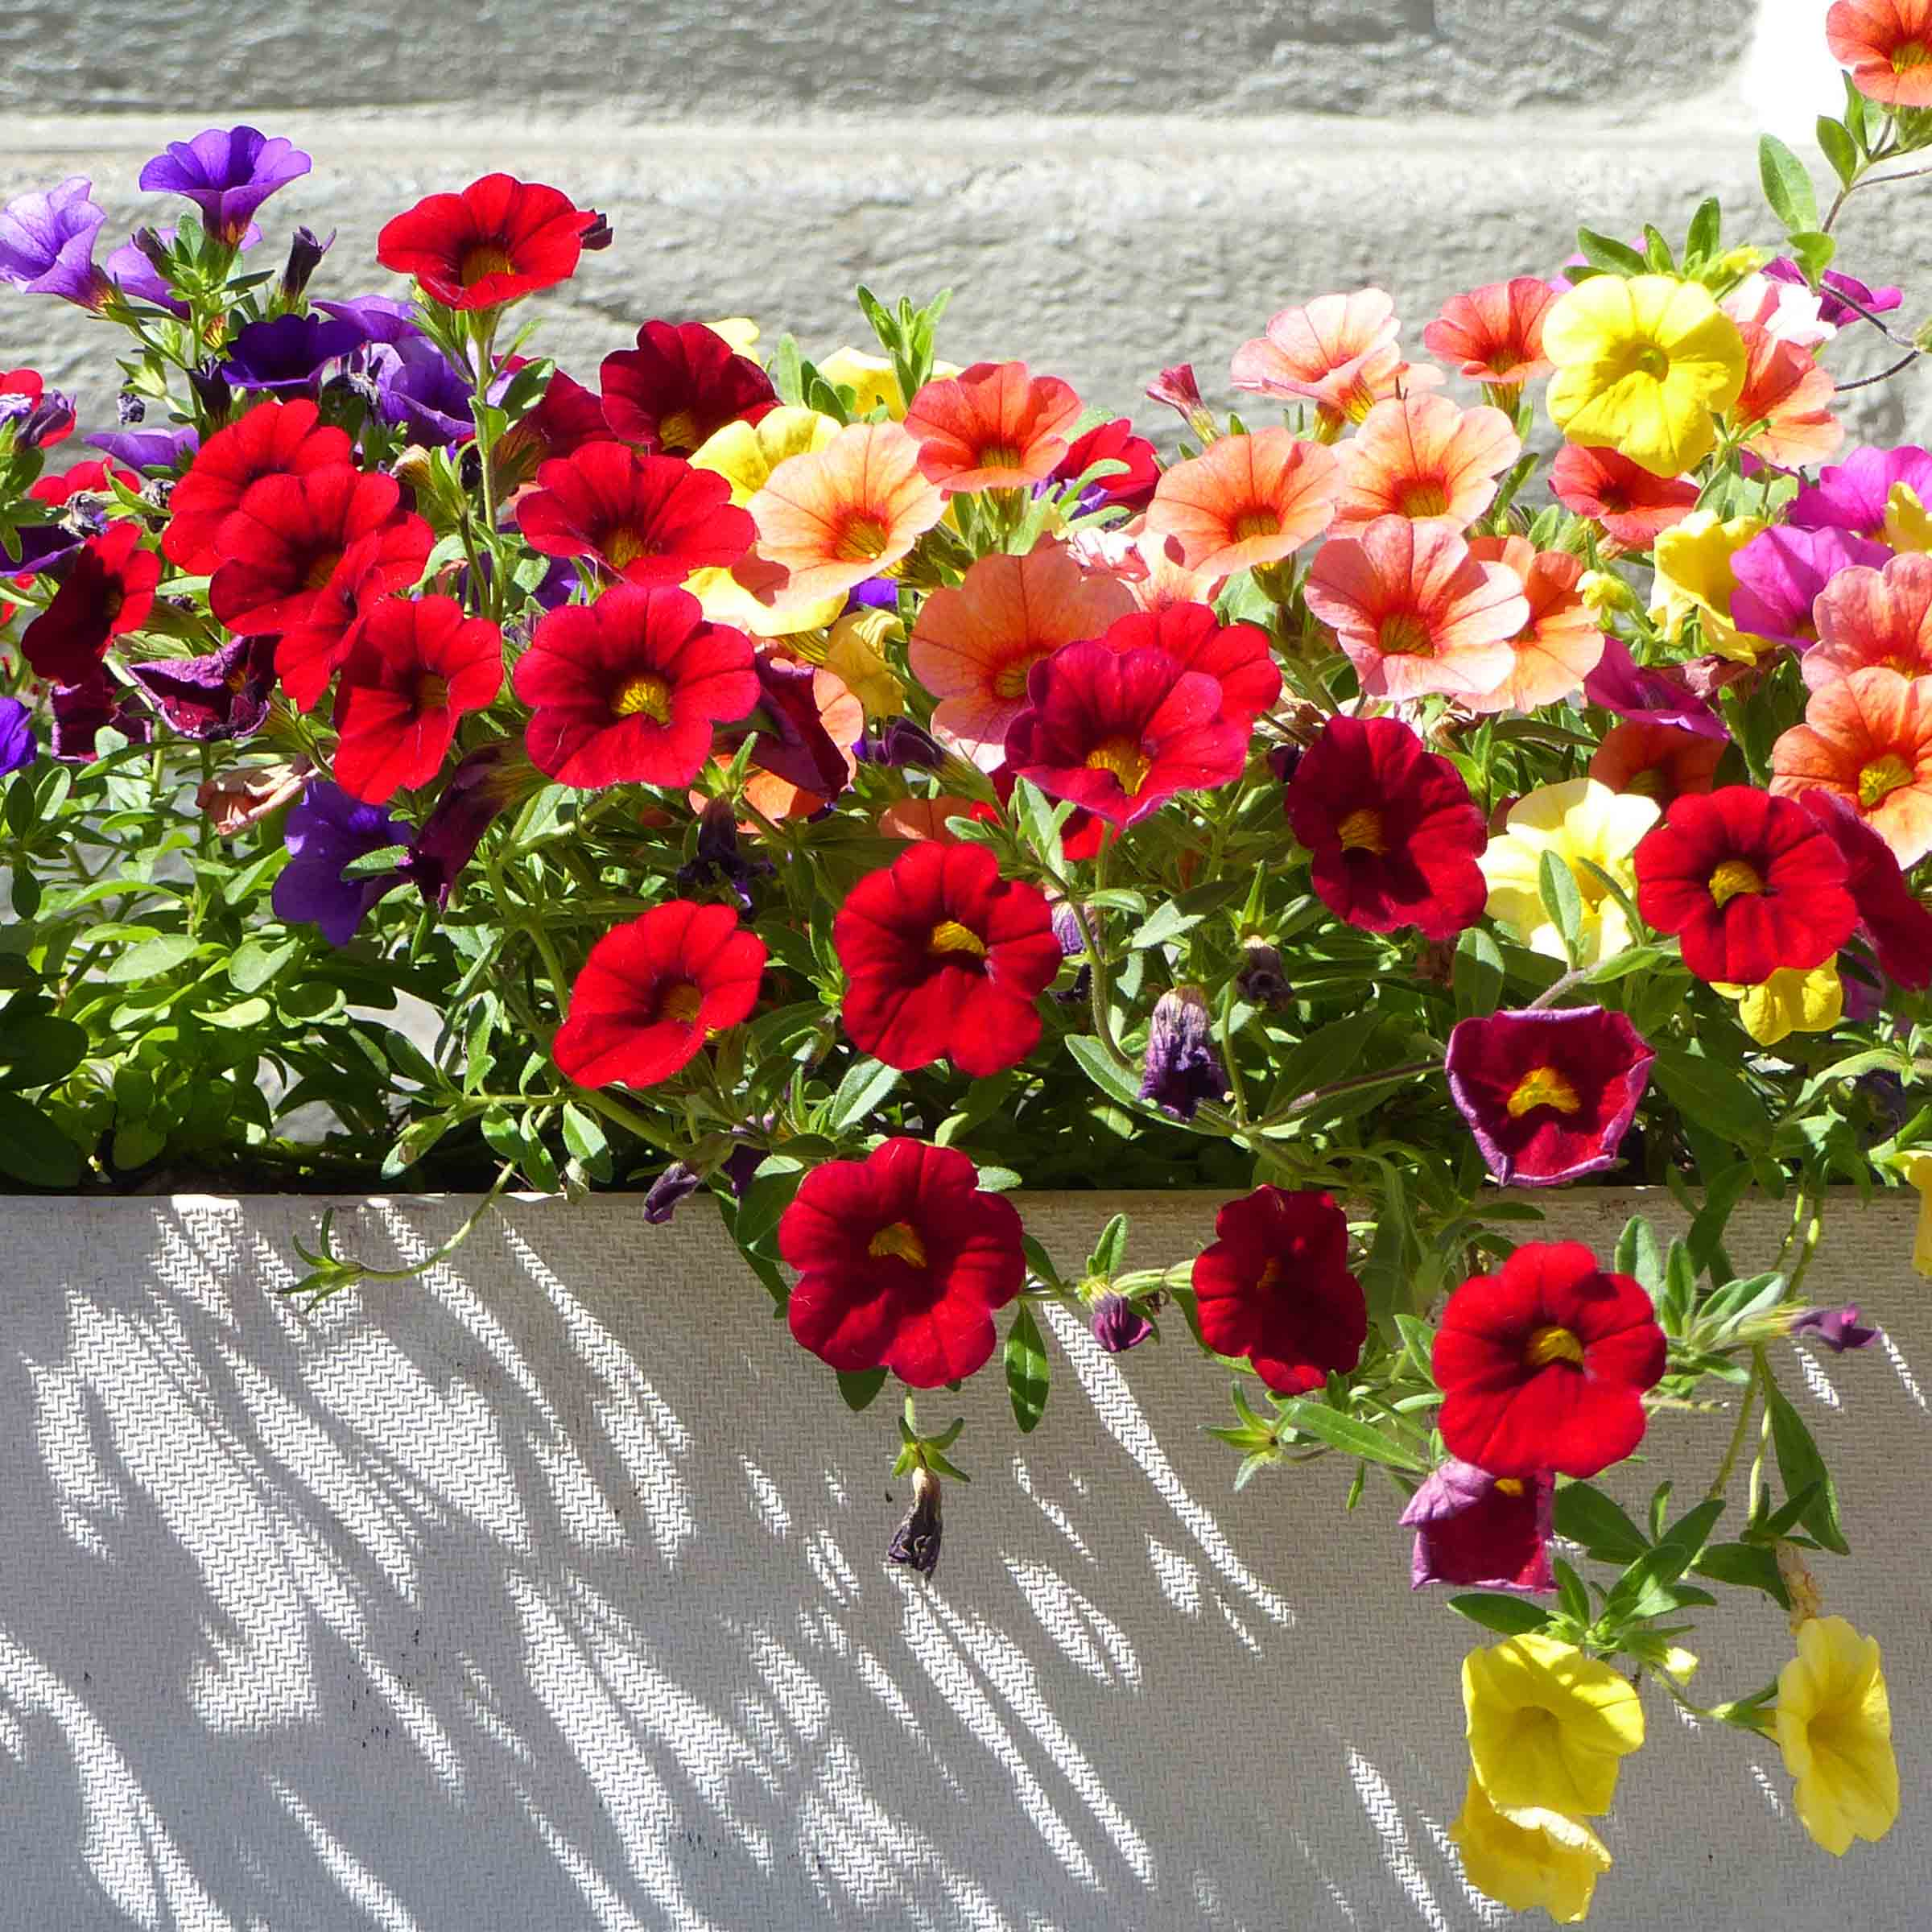 Colourful flowers in a white pot